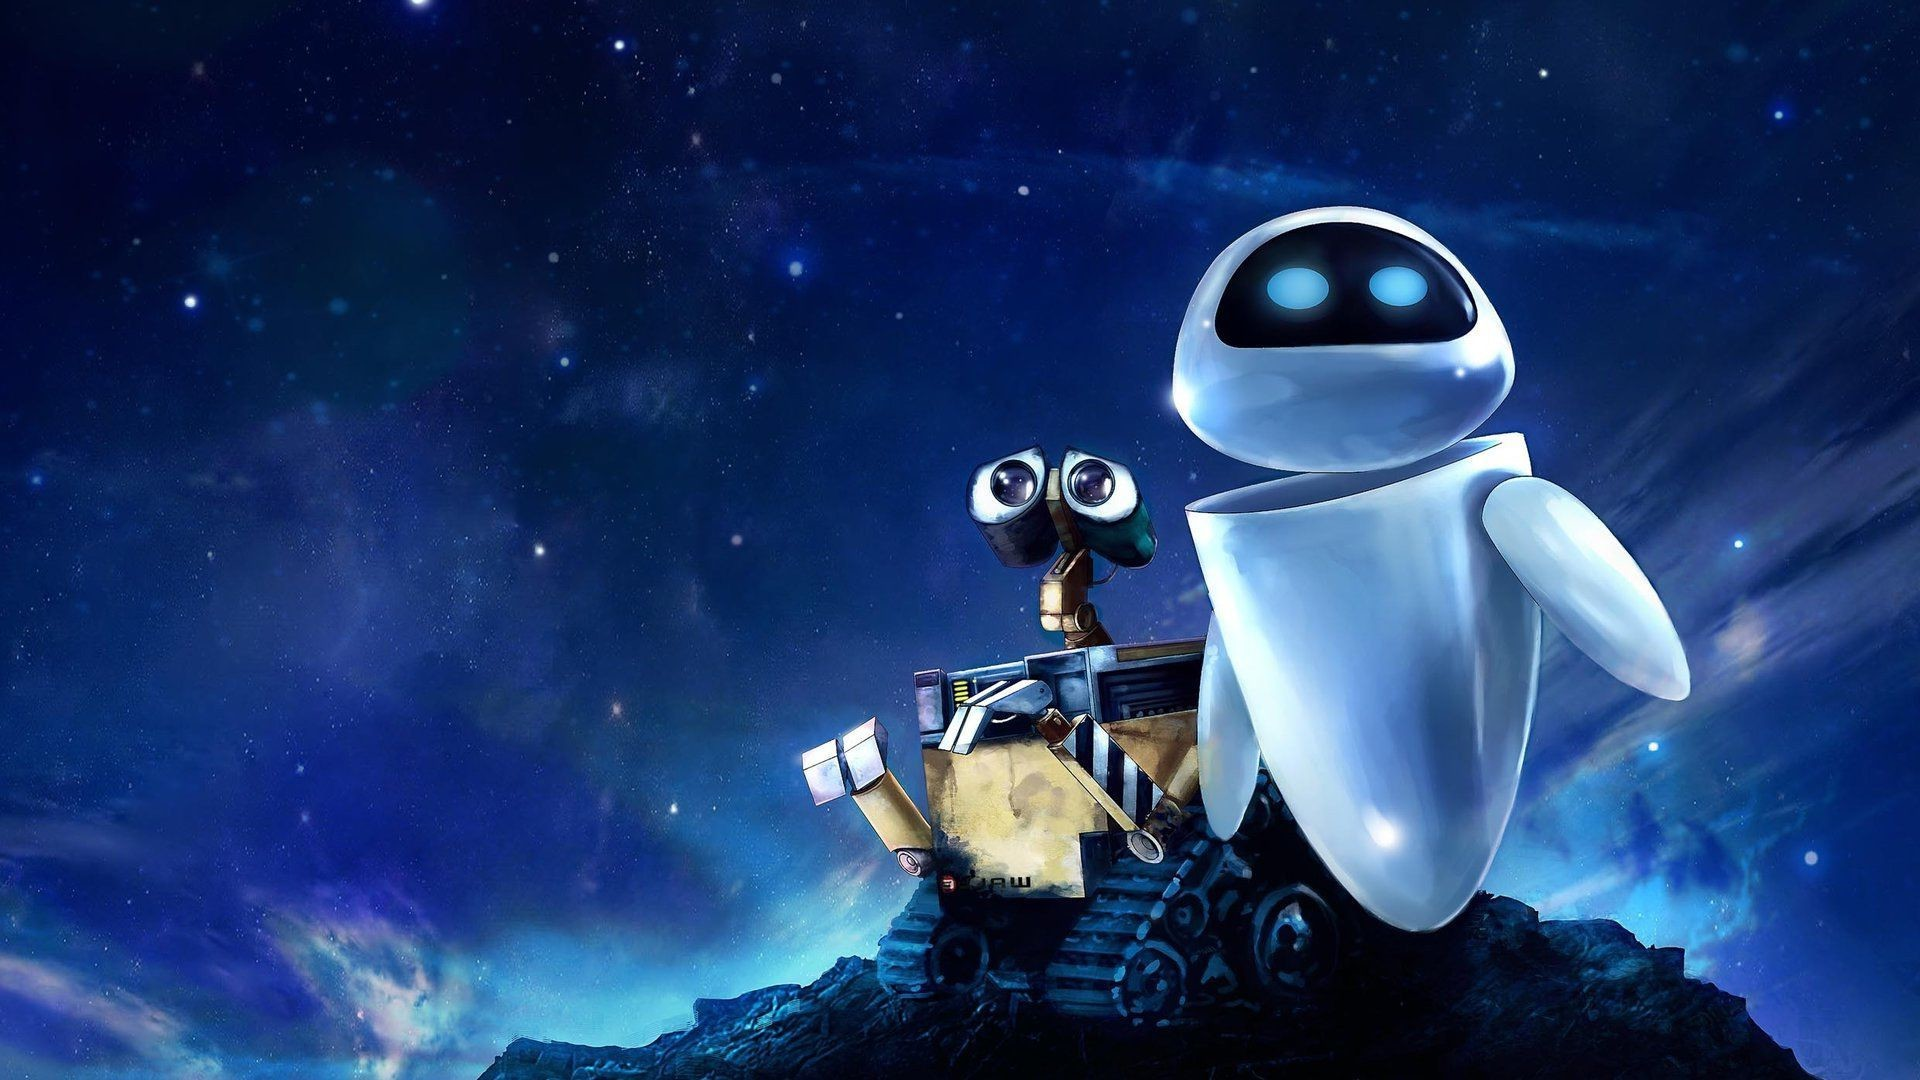 Wall E Wallpapers 69 Images